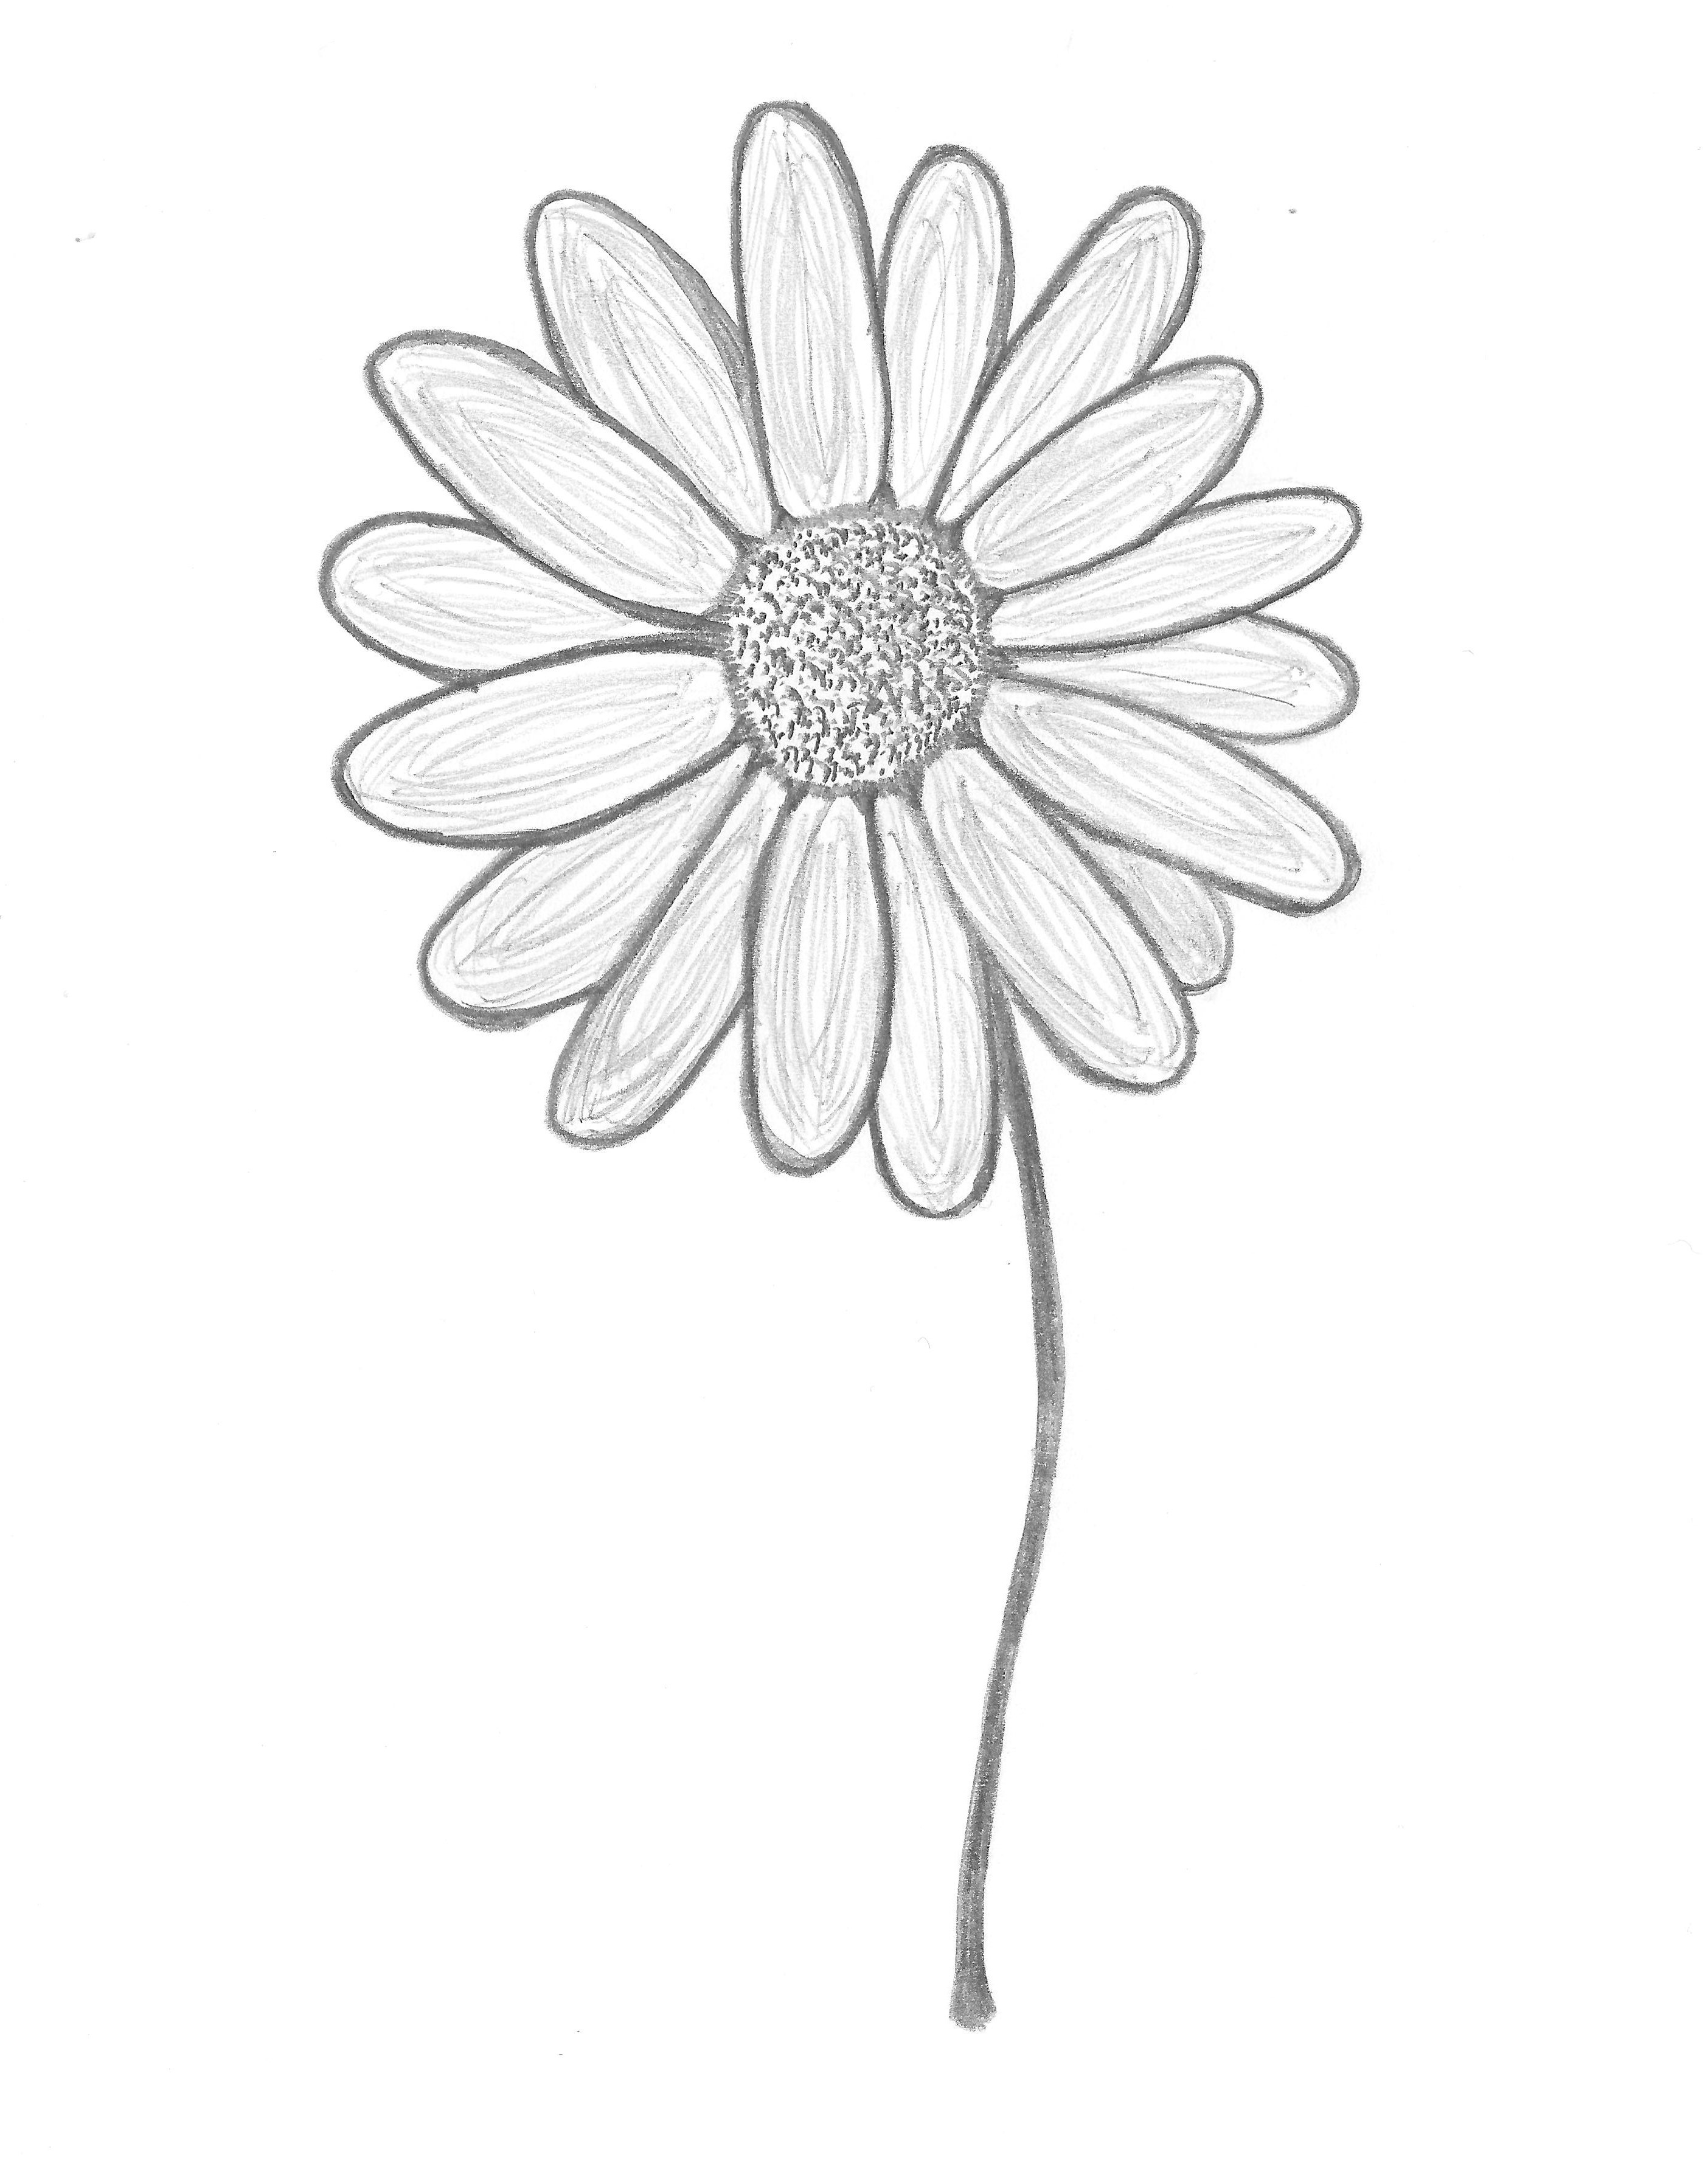 Daisy Drawing Tumblr At Getdrawings Free For Personal Use